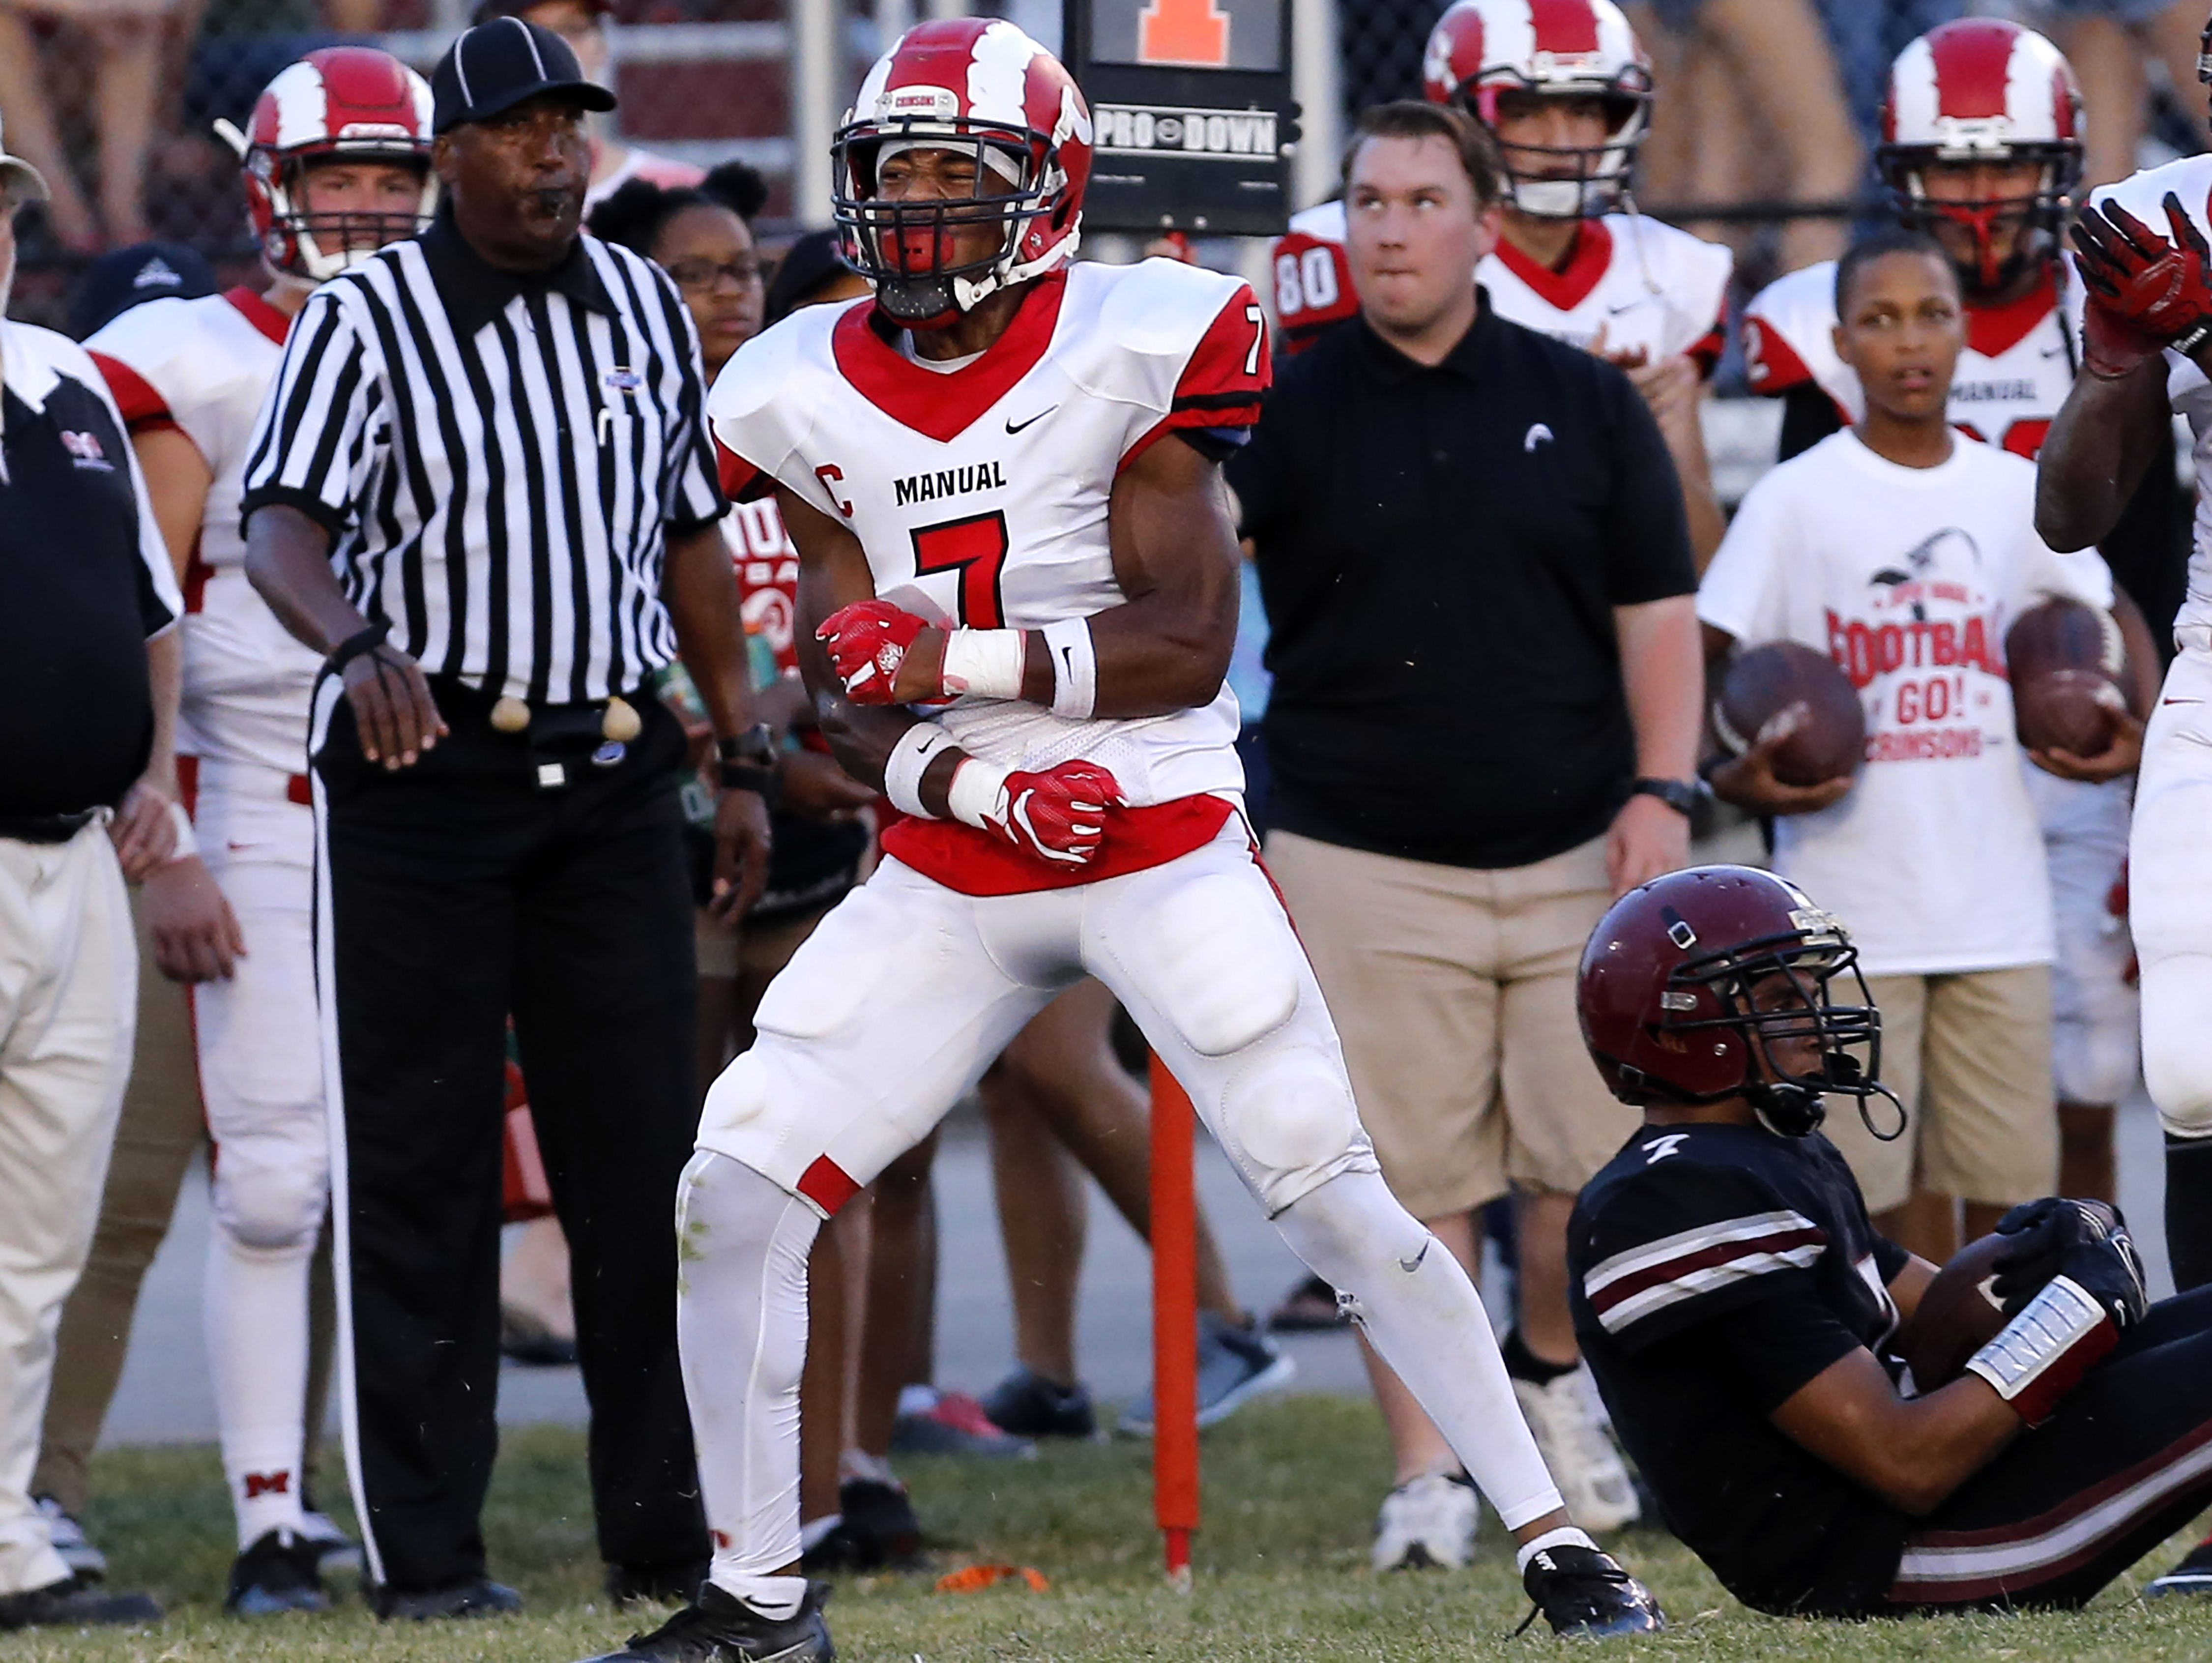 Manual's Bryce Cosby celebrates after tackling Ballard's Collin Brown. Sept. 16, 2016